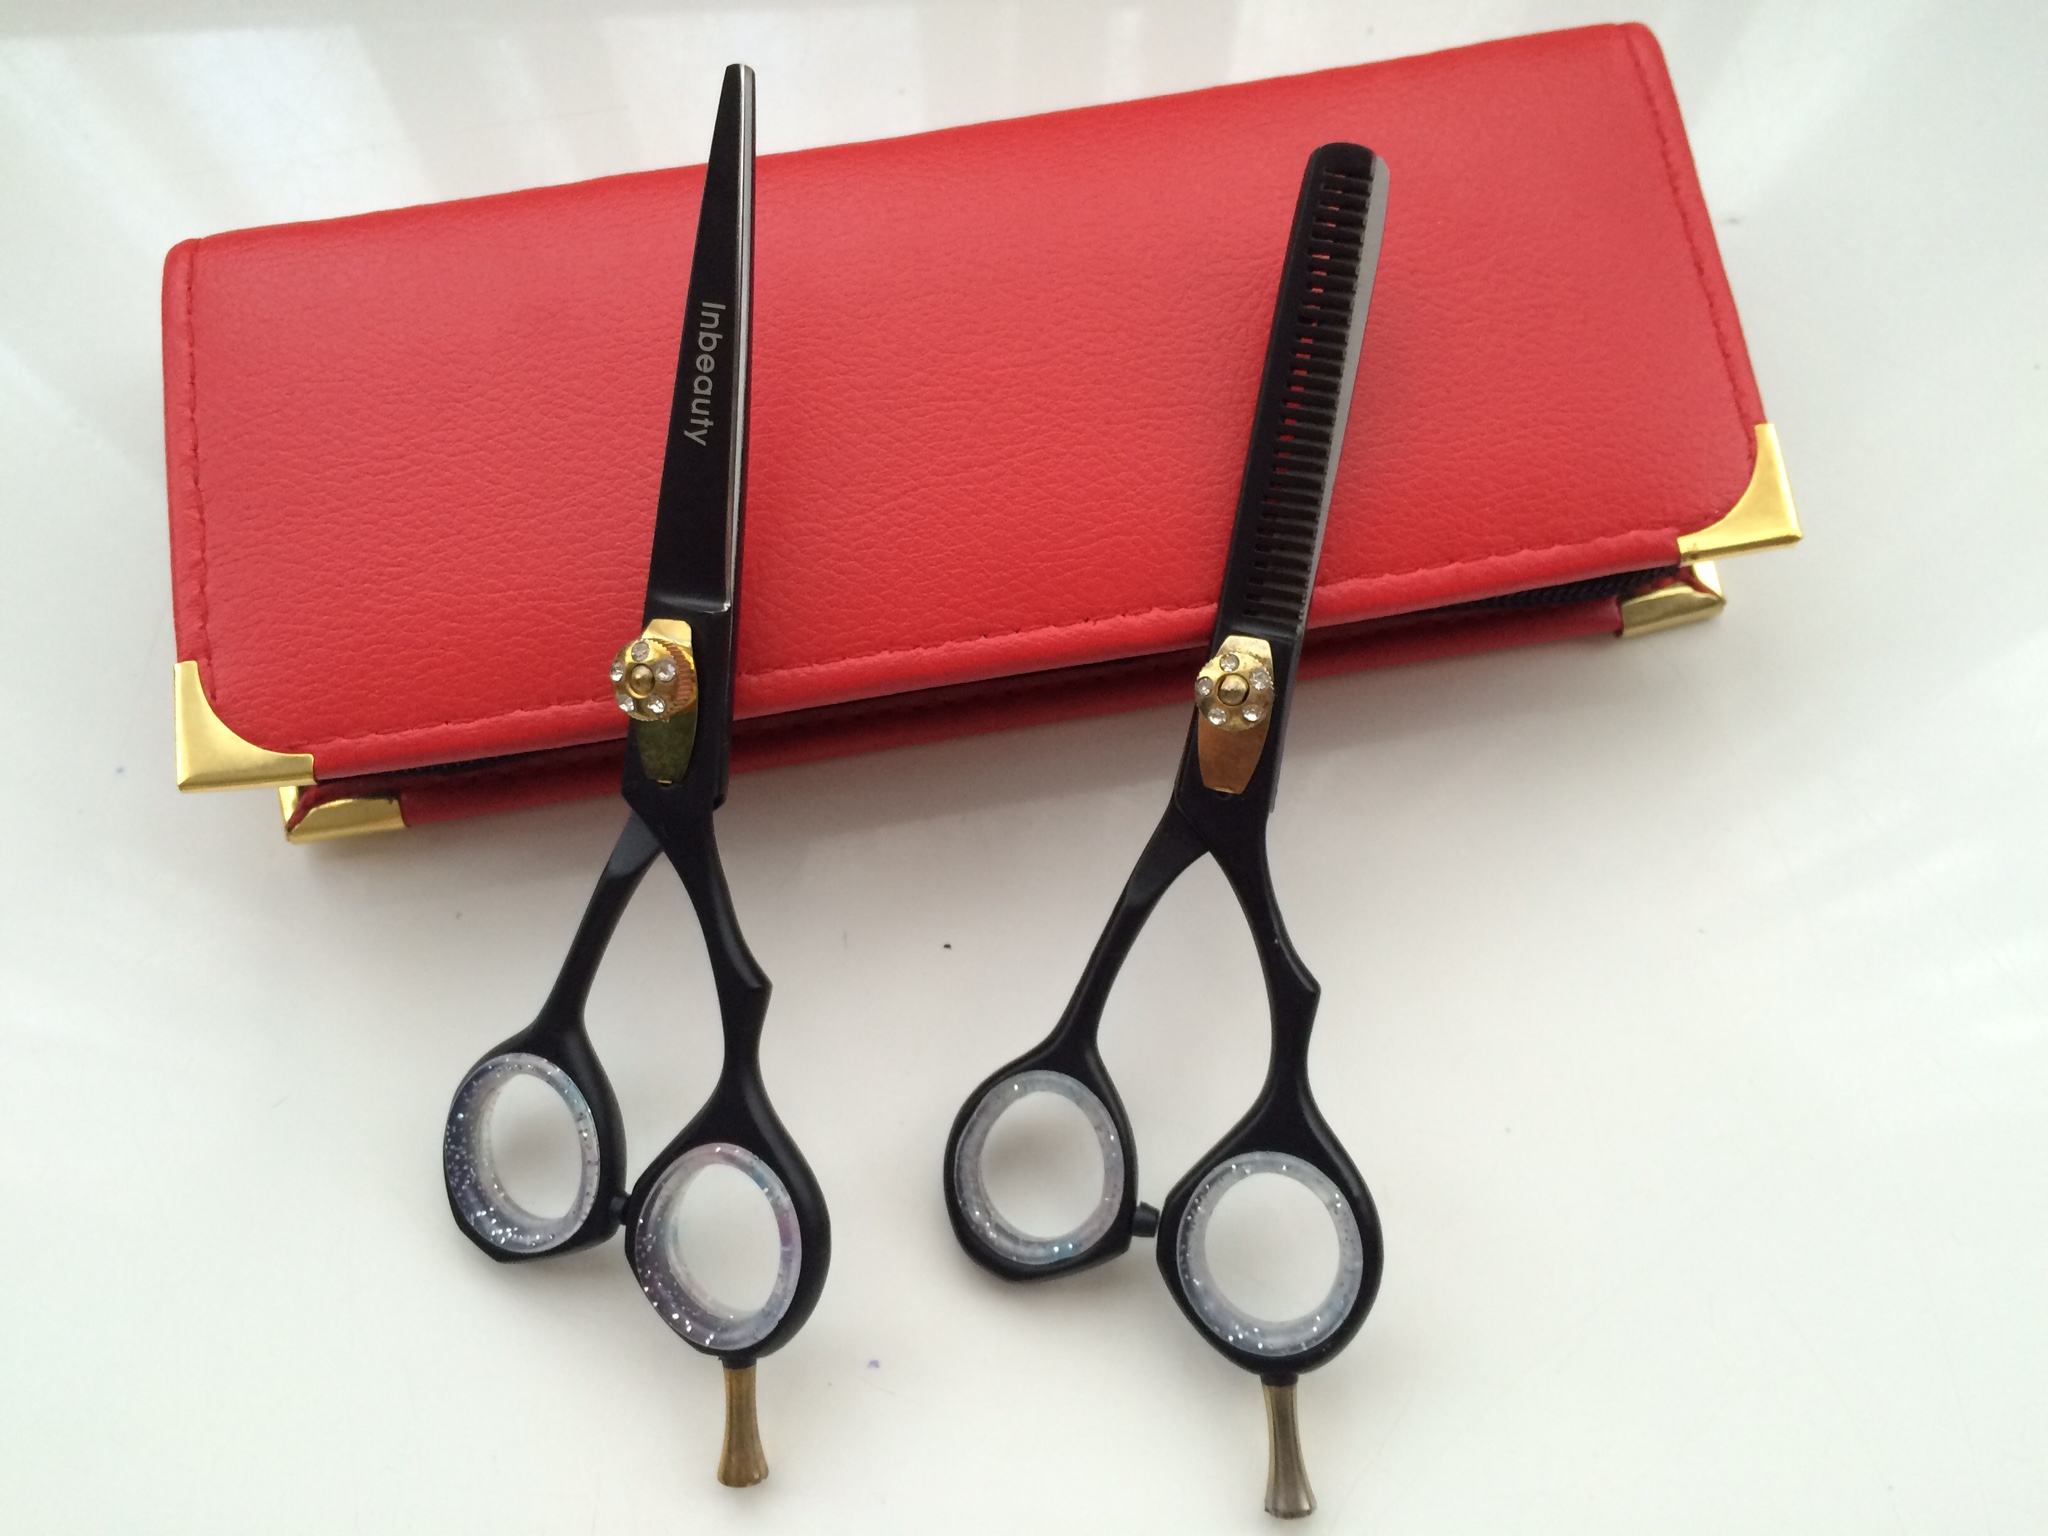 hair dressing scissor set black jewled stainless steel 5.5inch